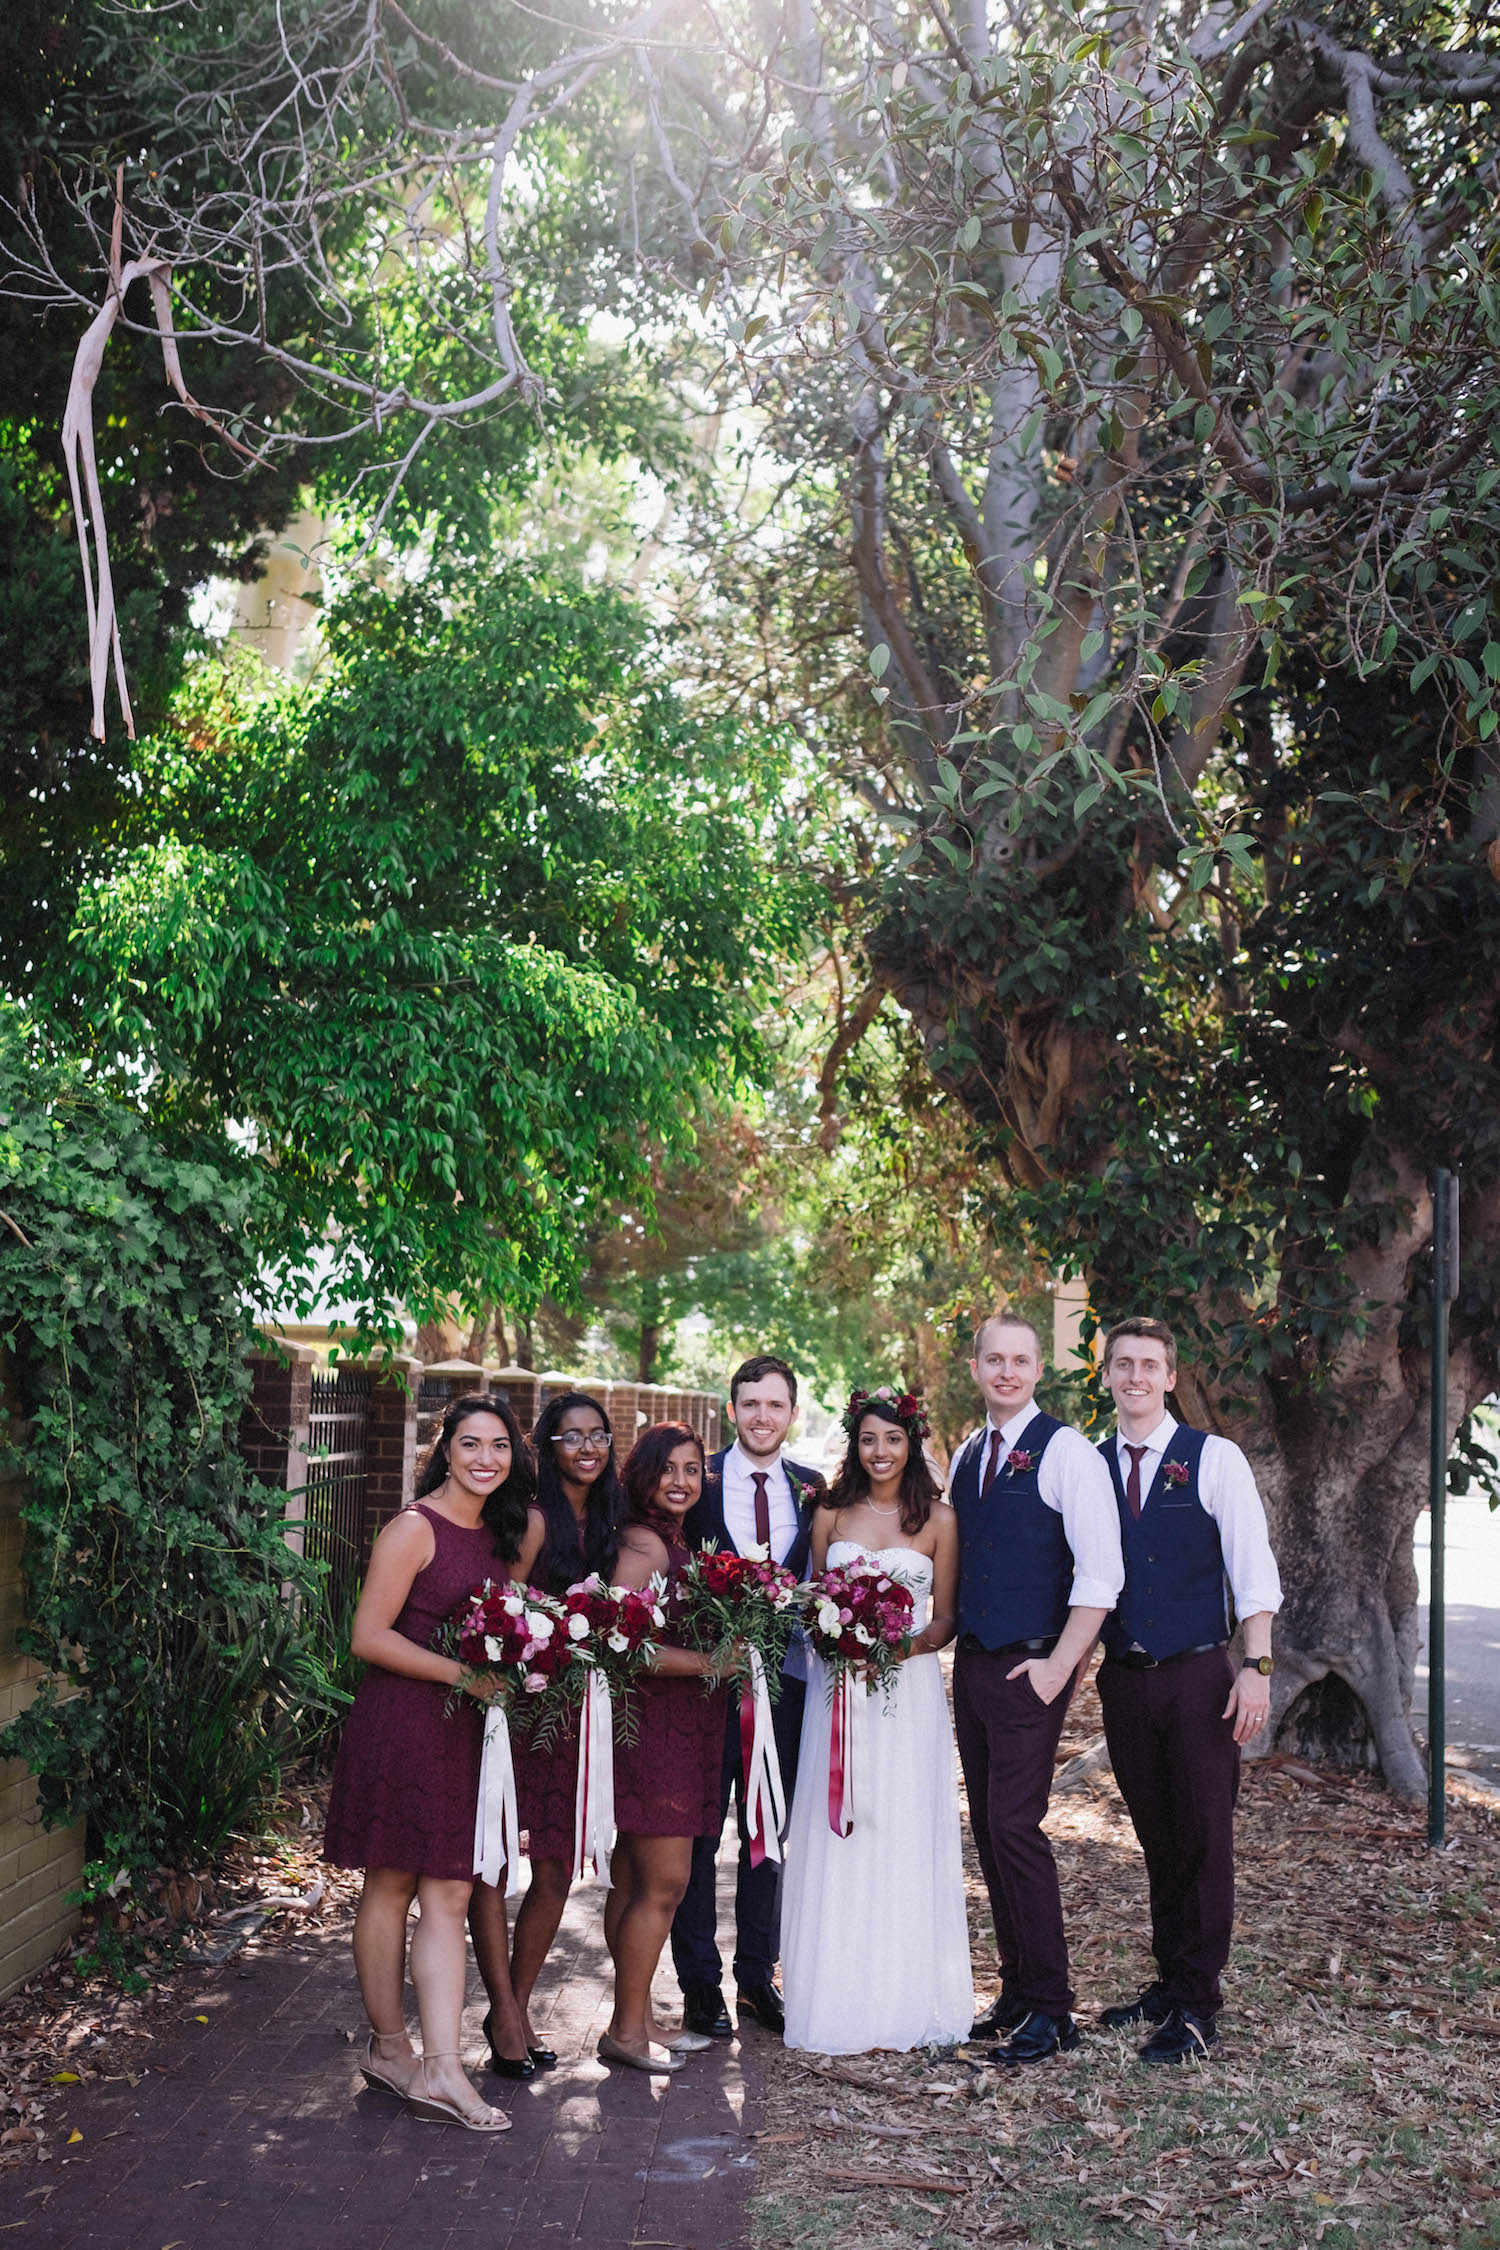 Bridal Party Portraits outside St Matthew's Anglican Church in Subiaco, taken by Rhianna May Destination Wedding Photographer